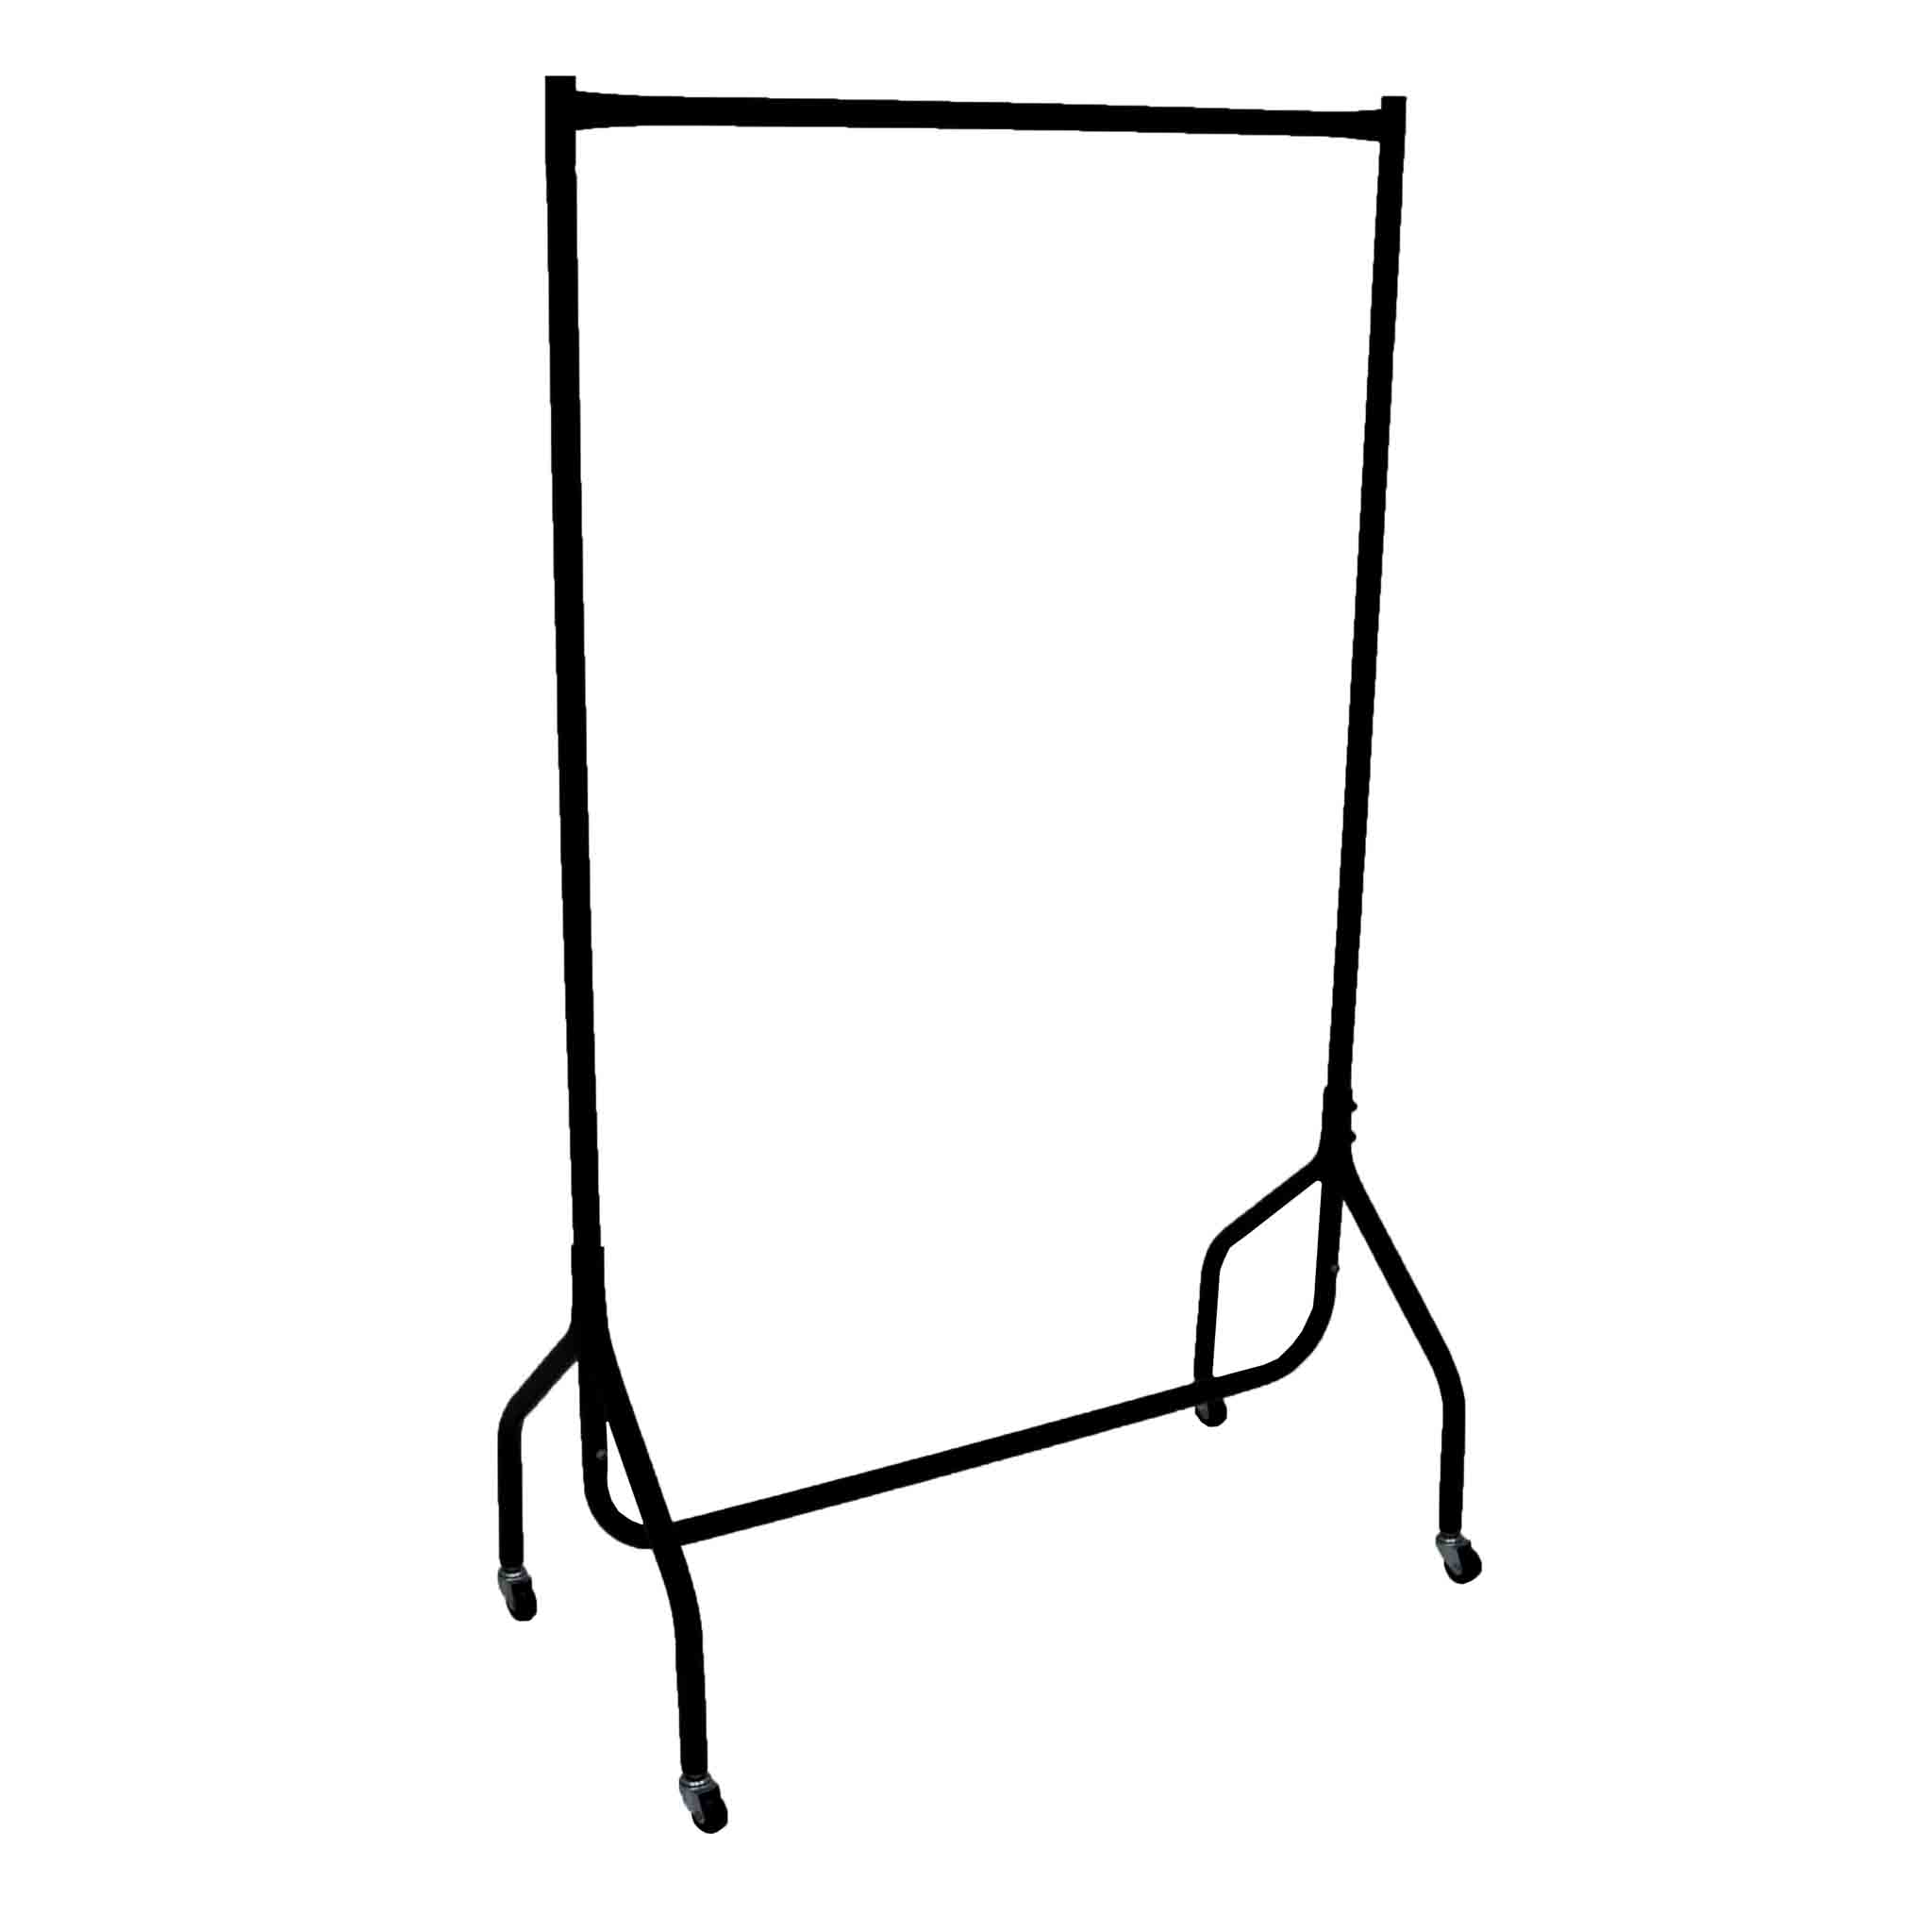 rack organisers ikea ireland both metal small indoor suitable and products stands racks outdoor turbo rails black for clothes use in ie en storage